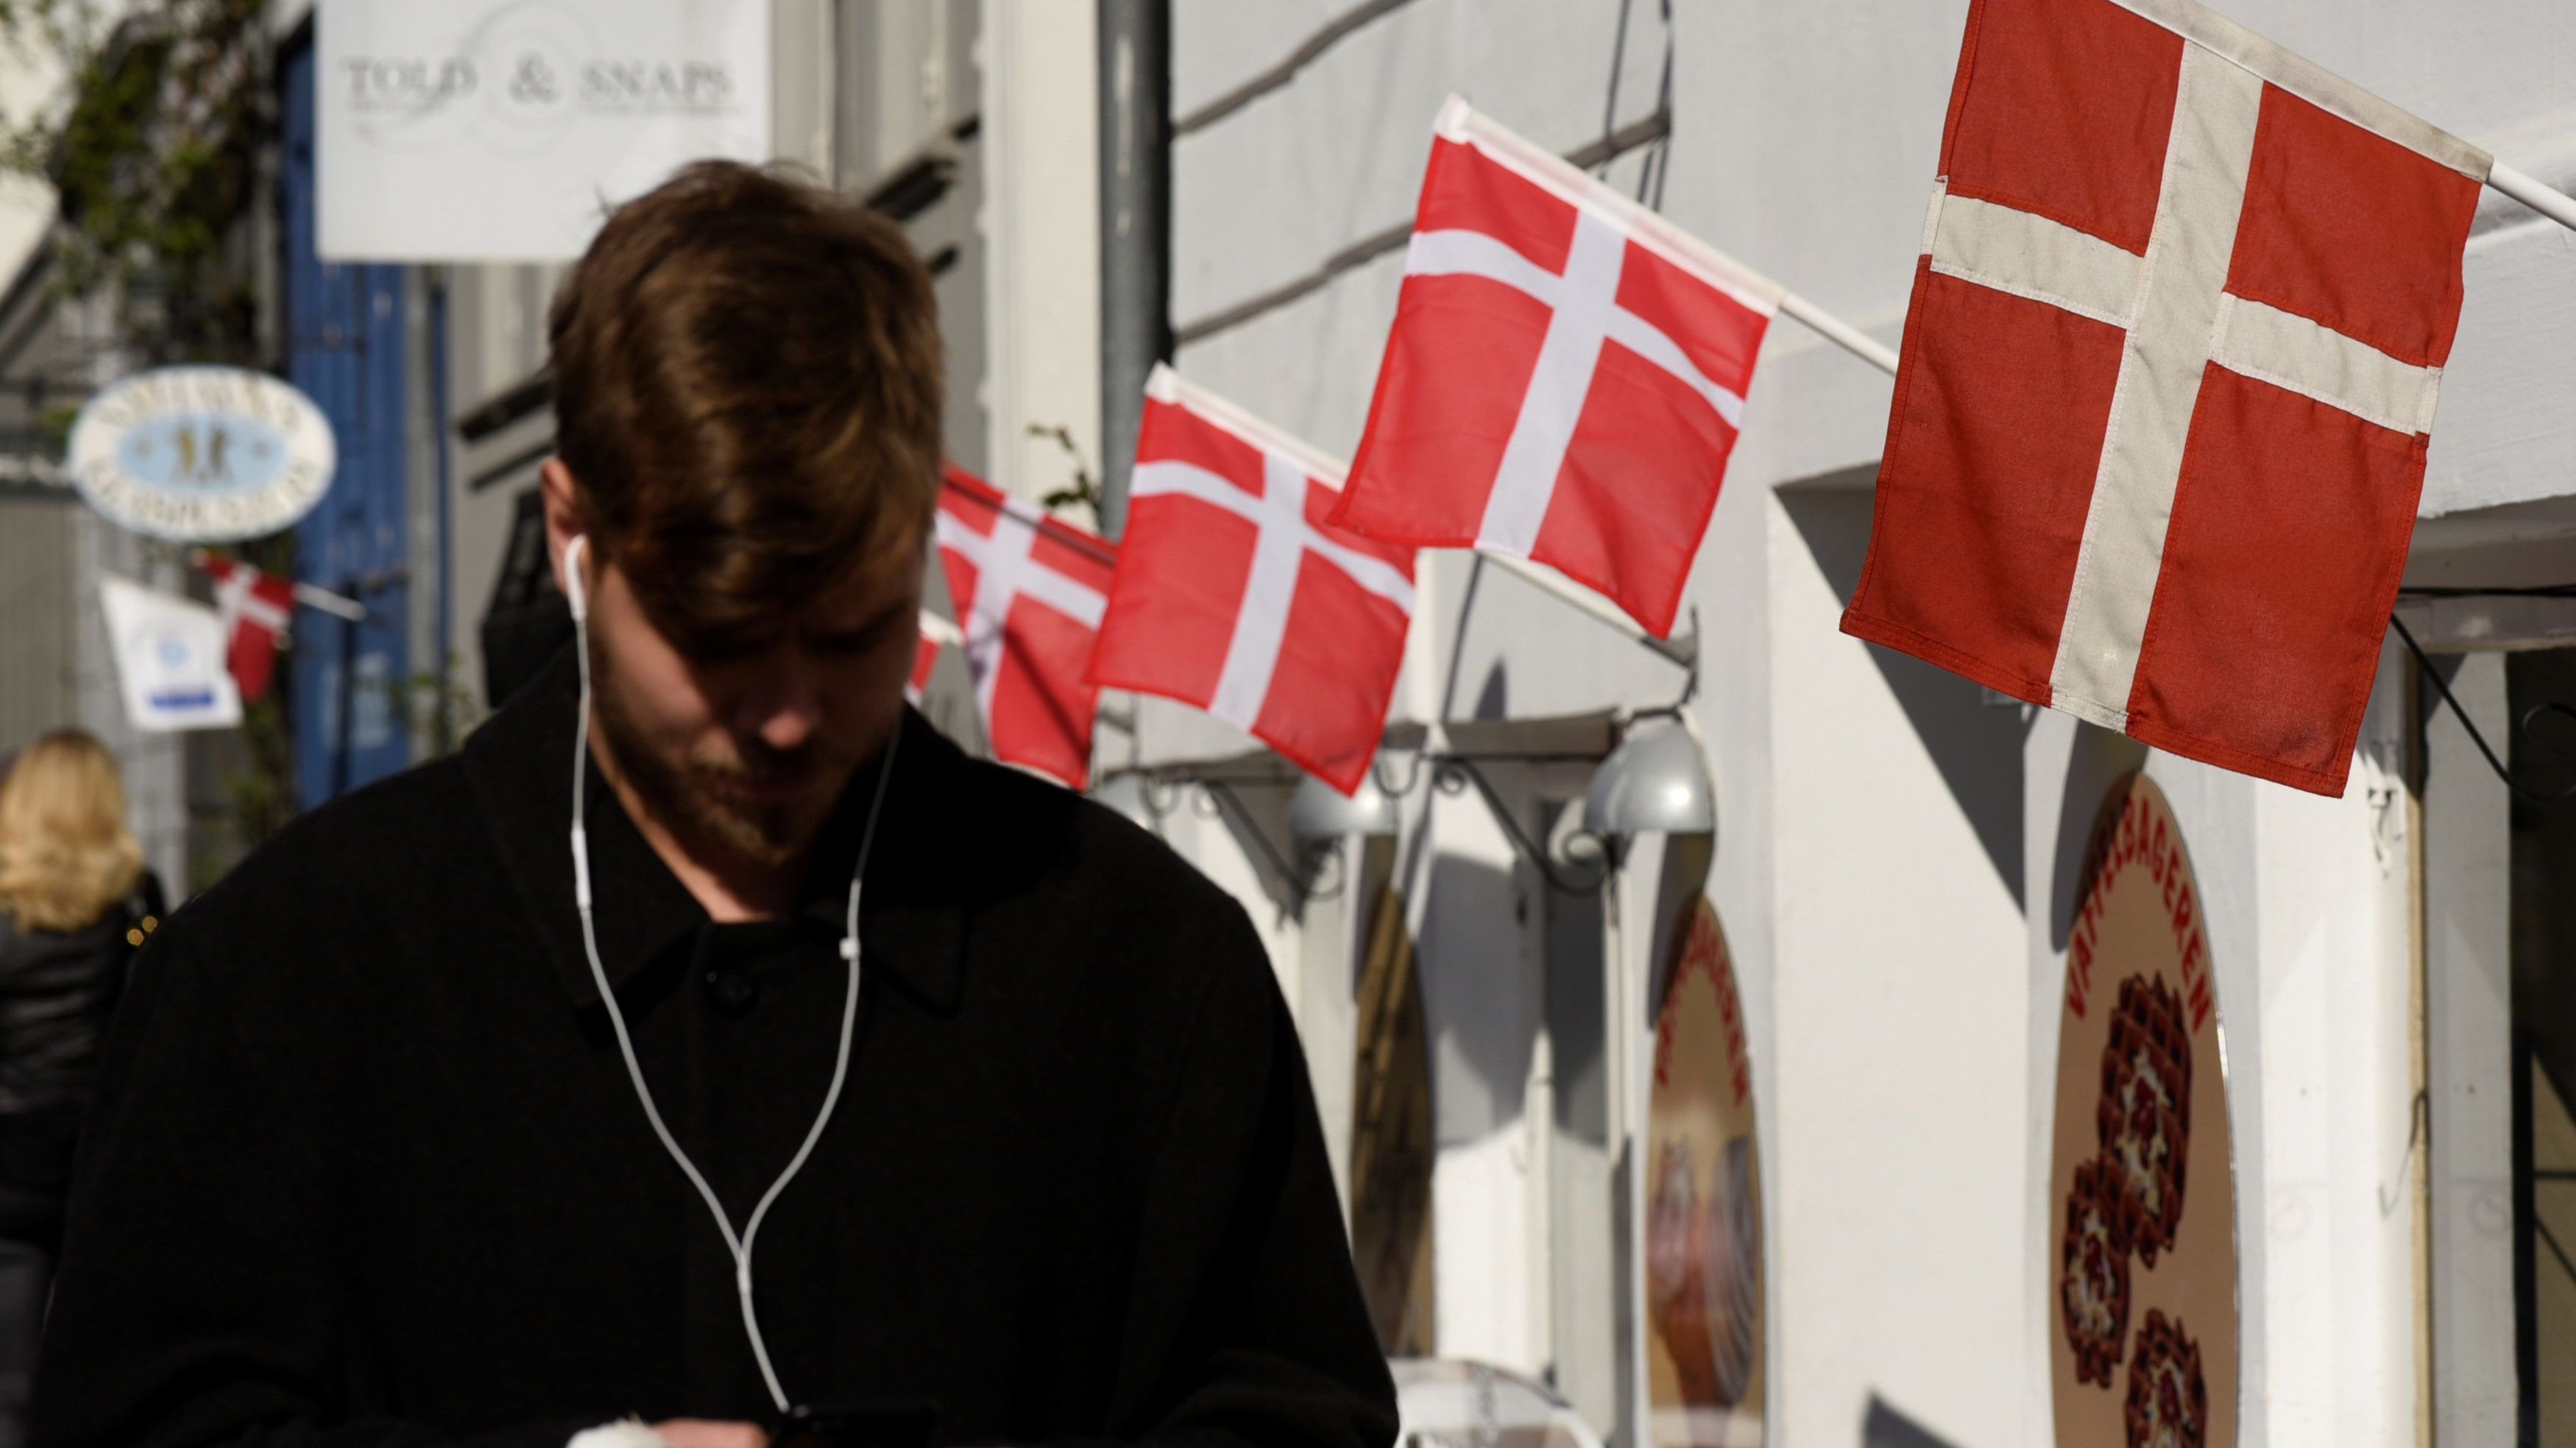 Danish flags are pictured outside a cafe at the famous landmark Nyhavn in Copenhagen